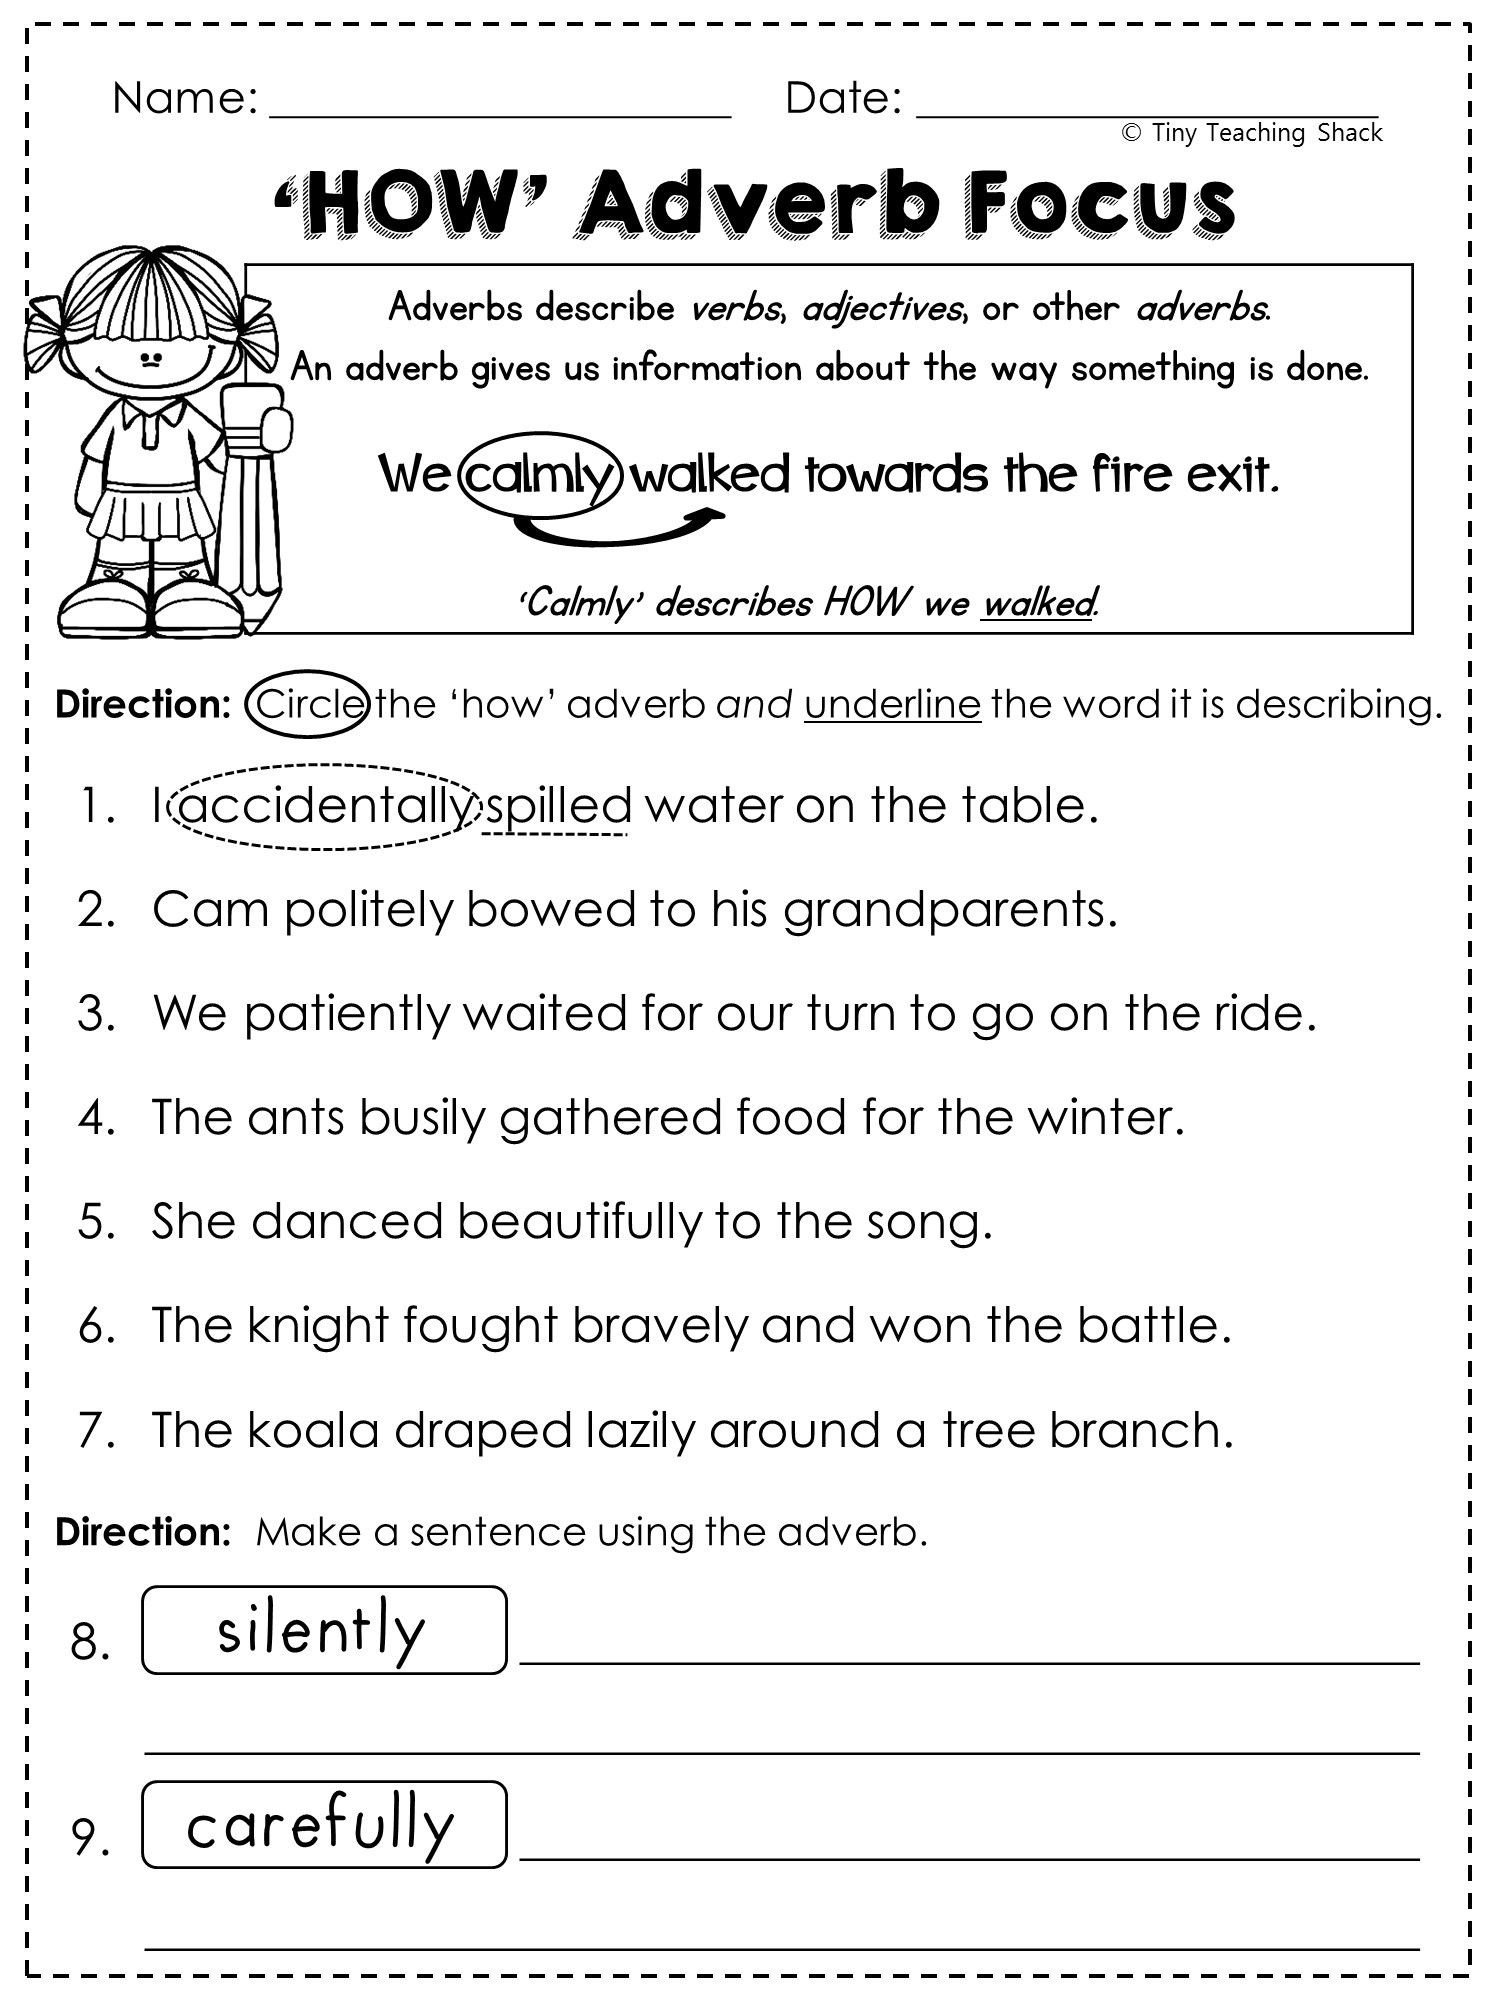 Proofreading Worksheets 3rd Grade Math Worksheet Grade English Worksheets Printable and